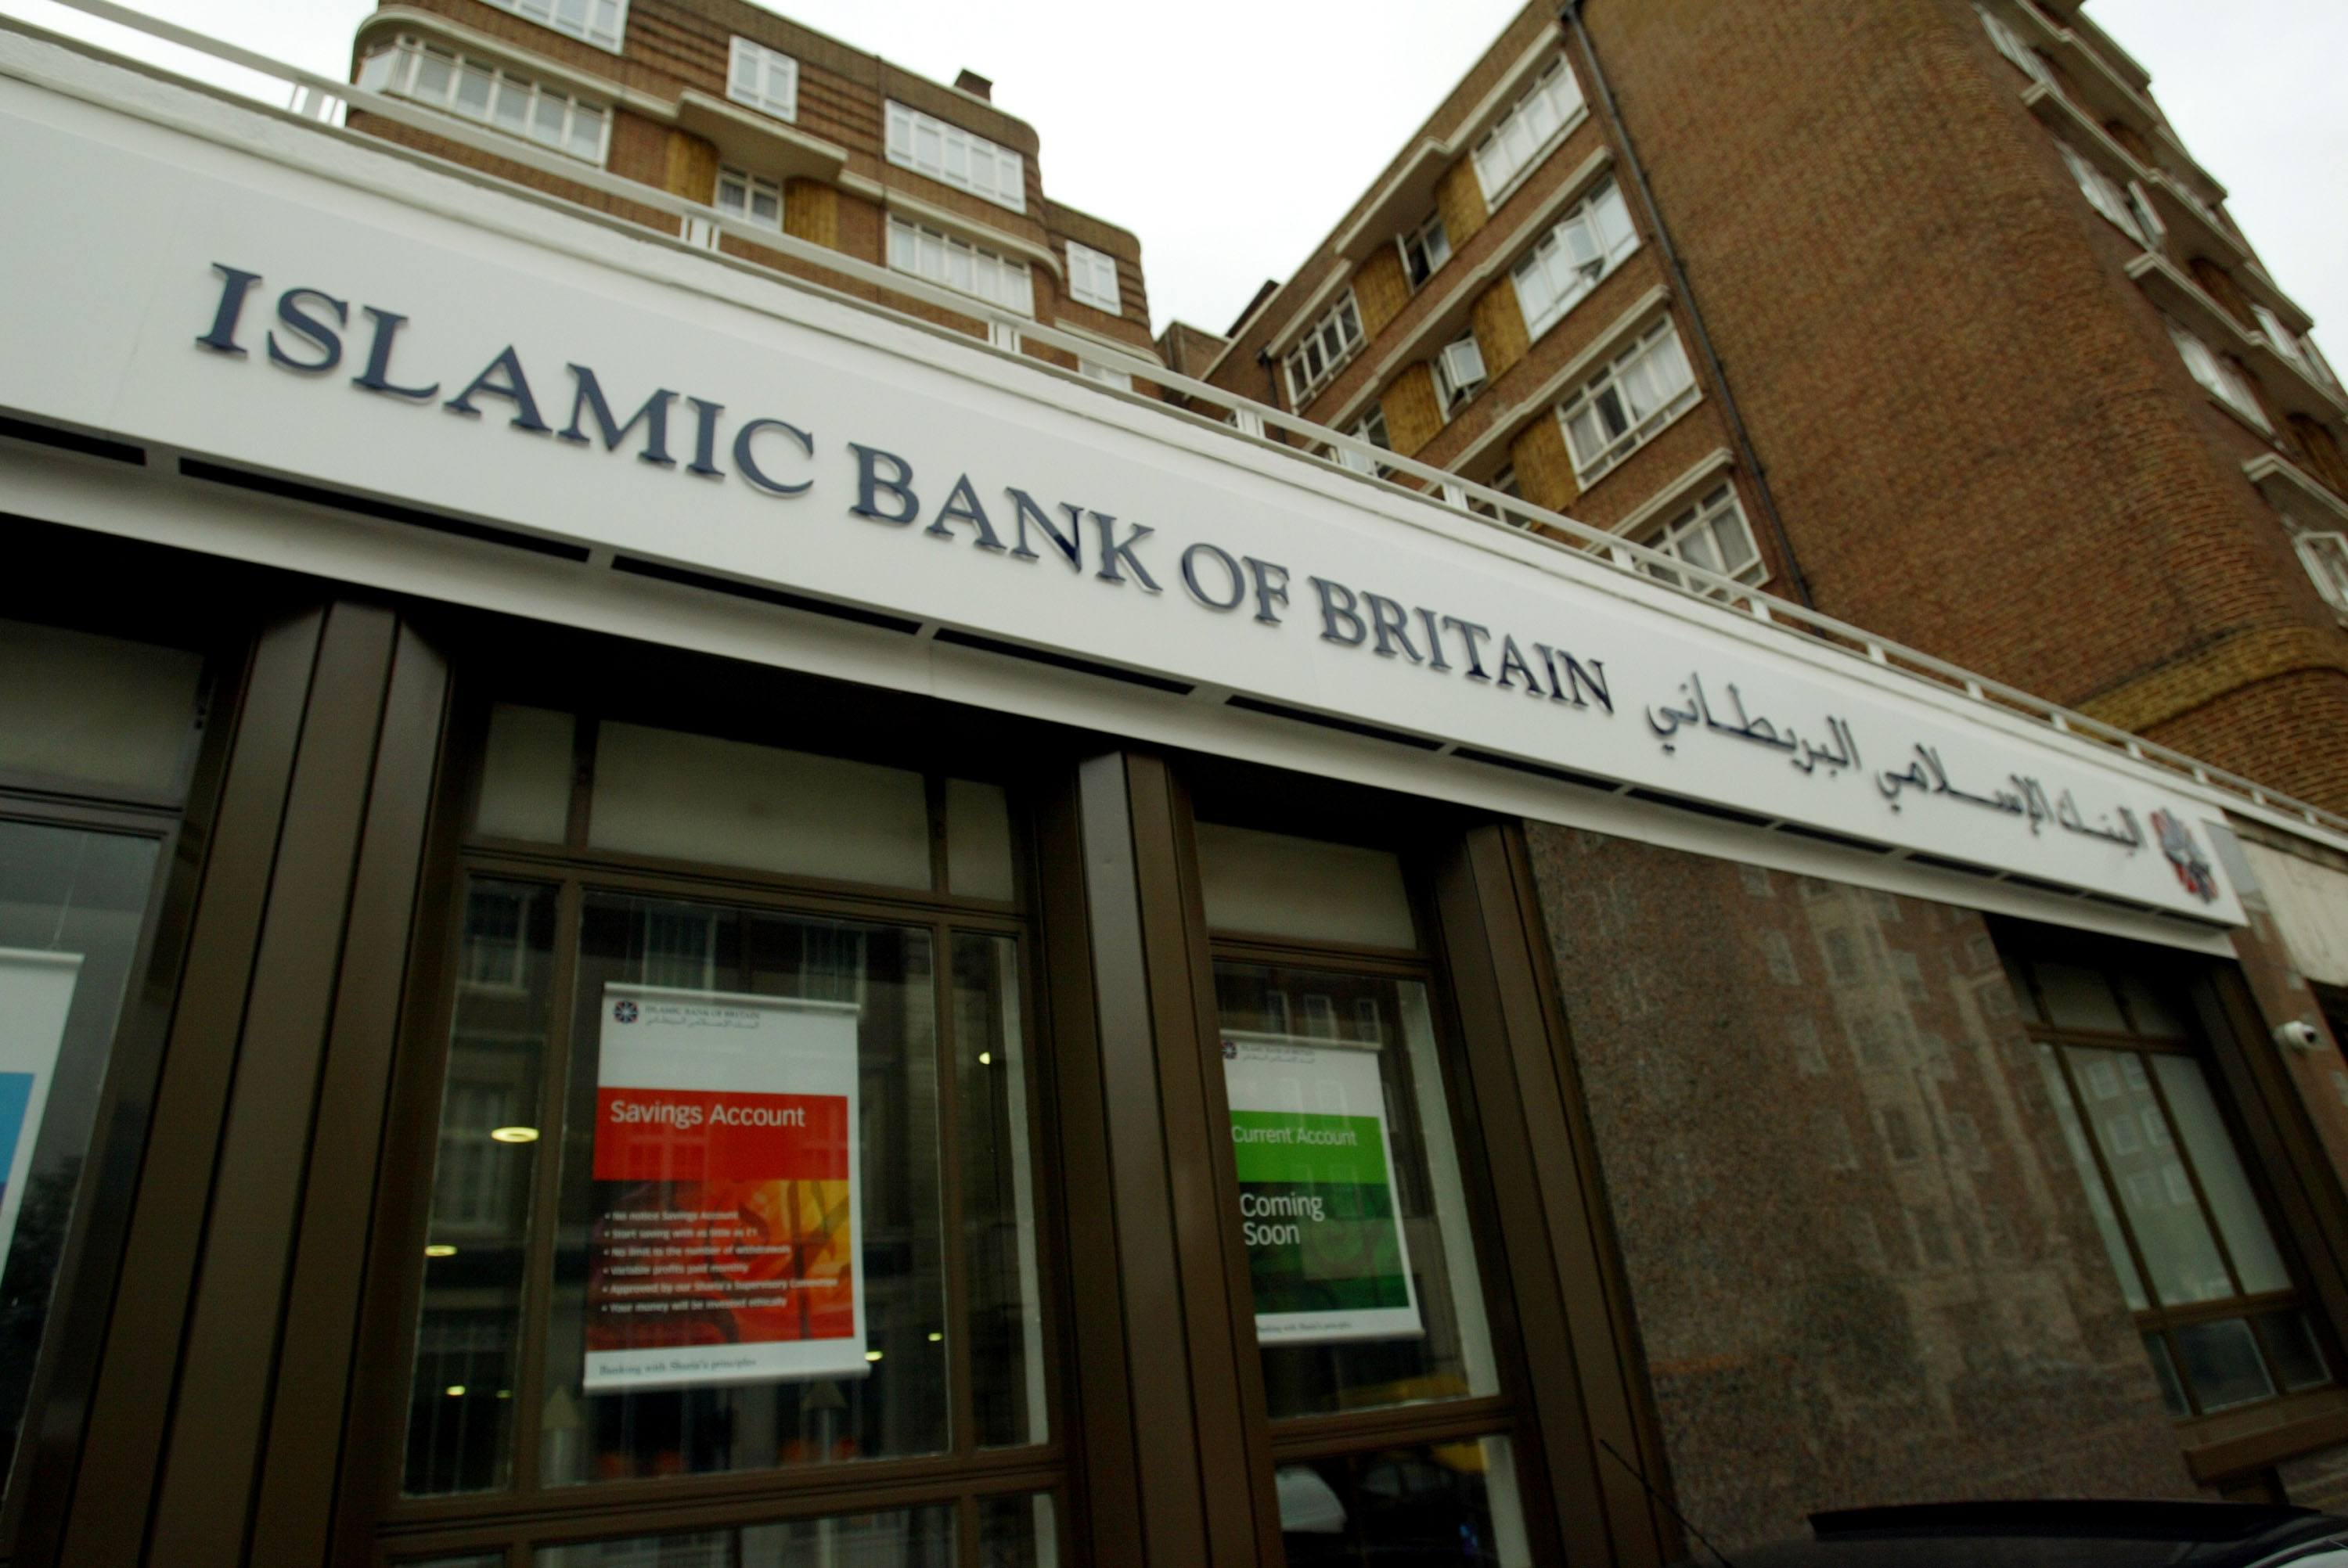 The Islamic Bank Of Britain Opens In The UK